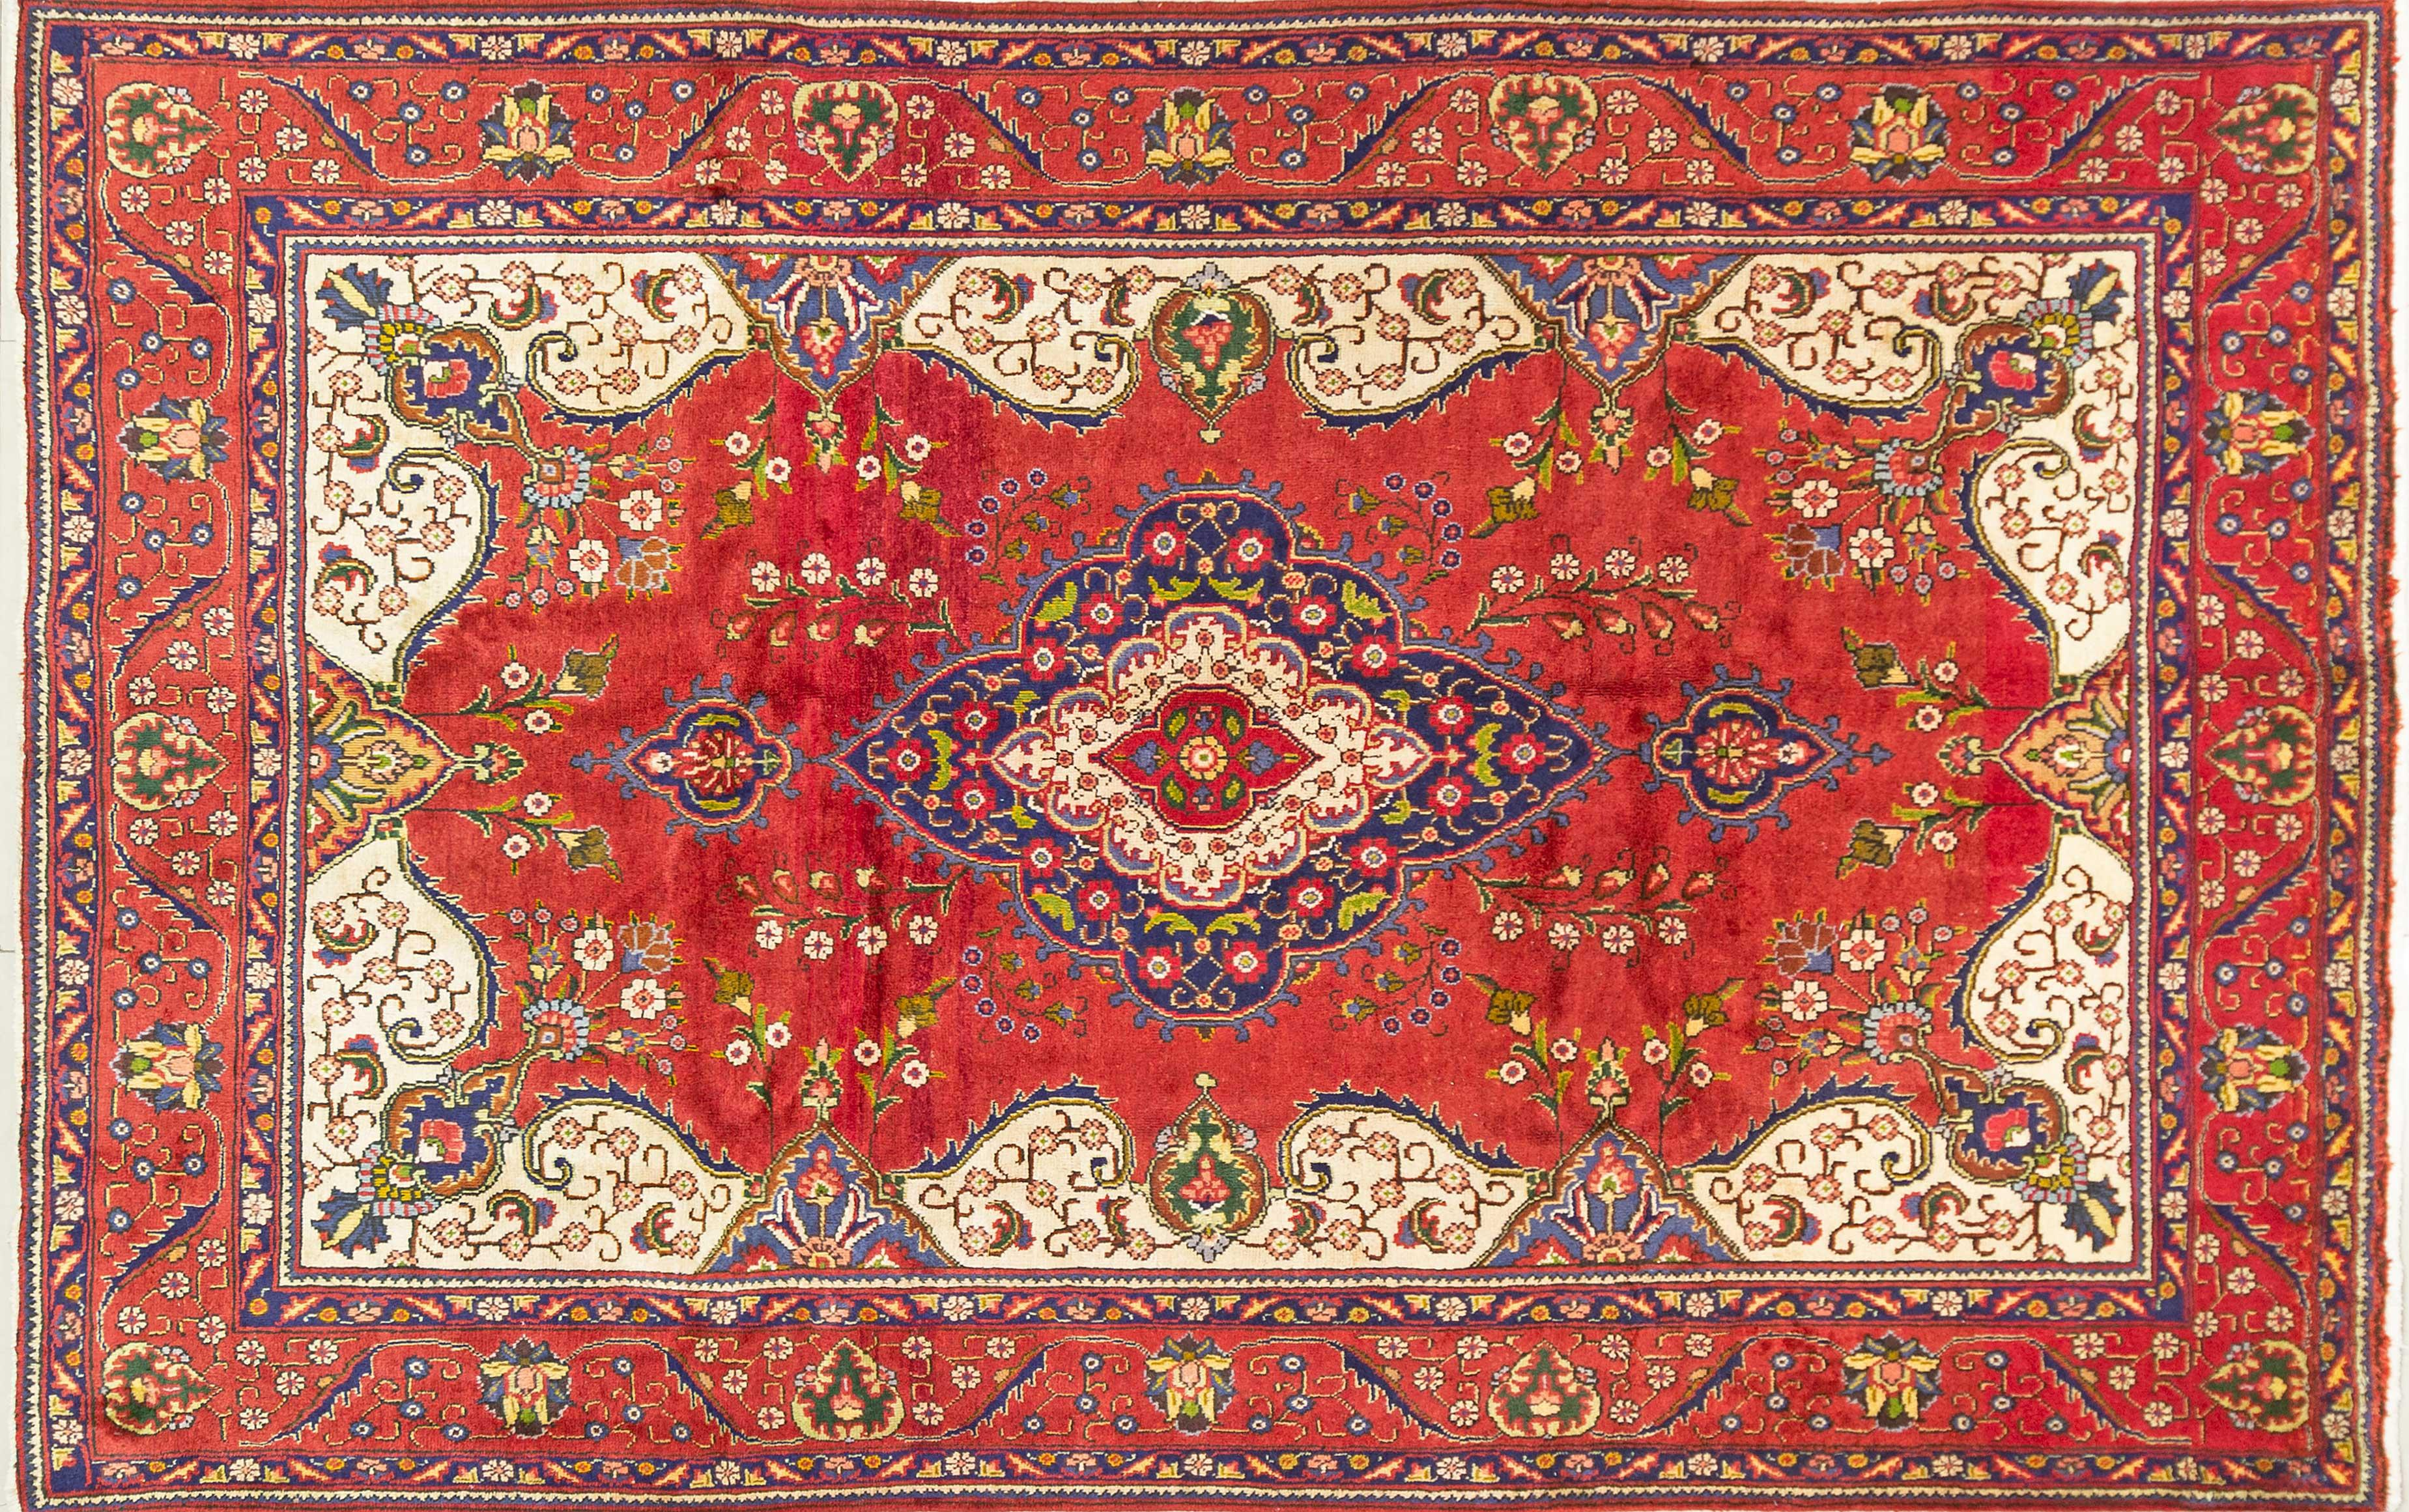 A Persian Hand Knotted Tabriz Carpet, 305 x 195